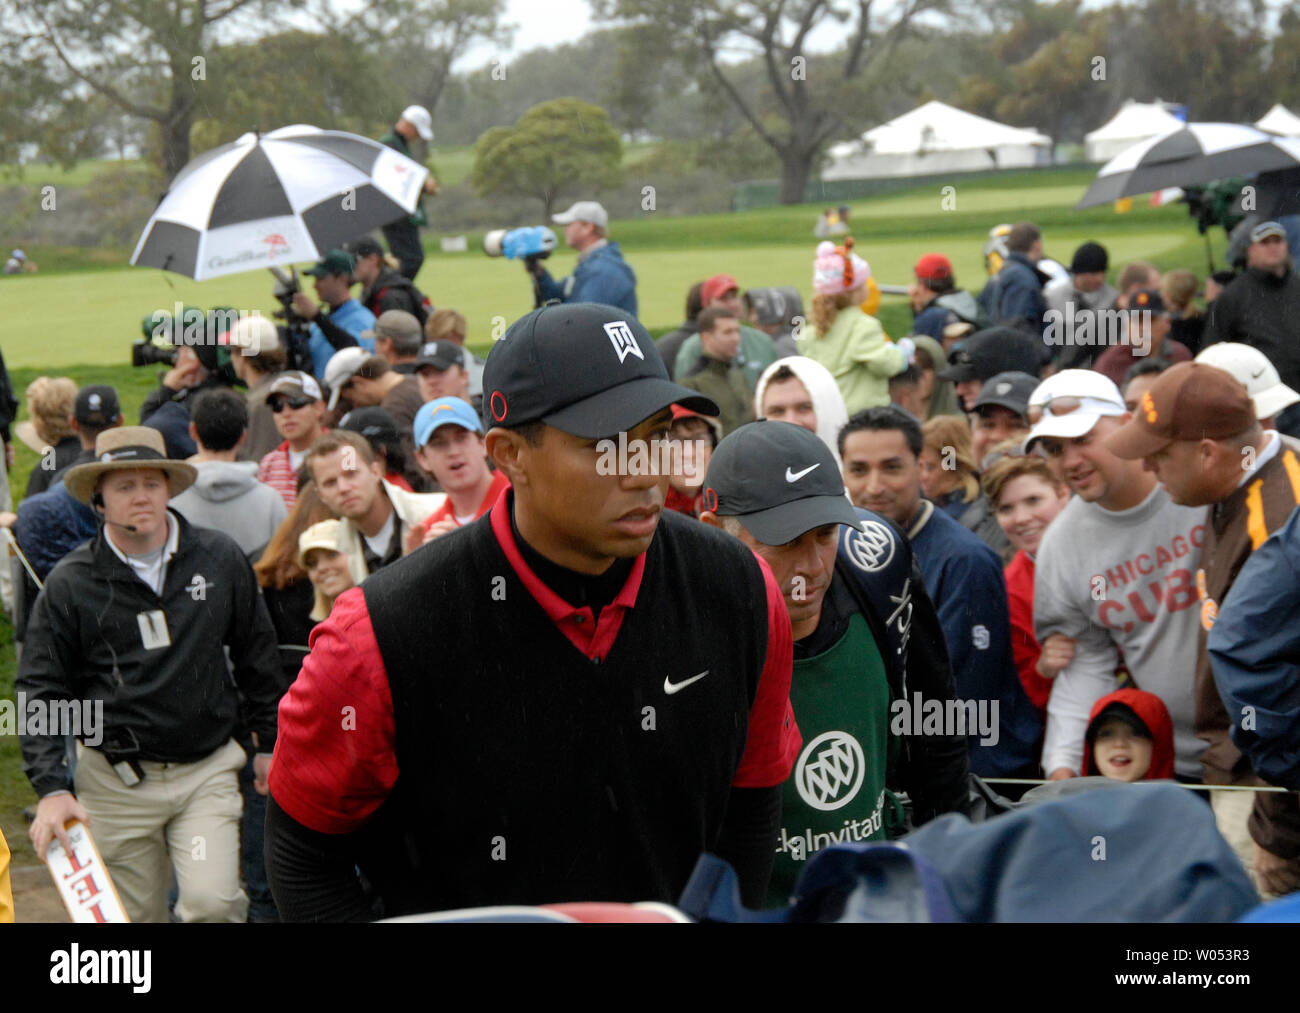 Tiger Woods walks through the gallery and onto the 18th green on his way to winning the Buick Invitational golf tournament January 27 2008 in San Diego. His victory ties Woods with Arnold Palmer with 62 all-time wins on the PGA Tour. Woods finished at 18-under 270 to win the Buick Invitational for the fourth consecutive year. (UPI Photo/Earl Cryer) - Stock Image